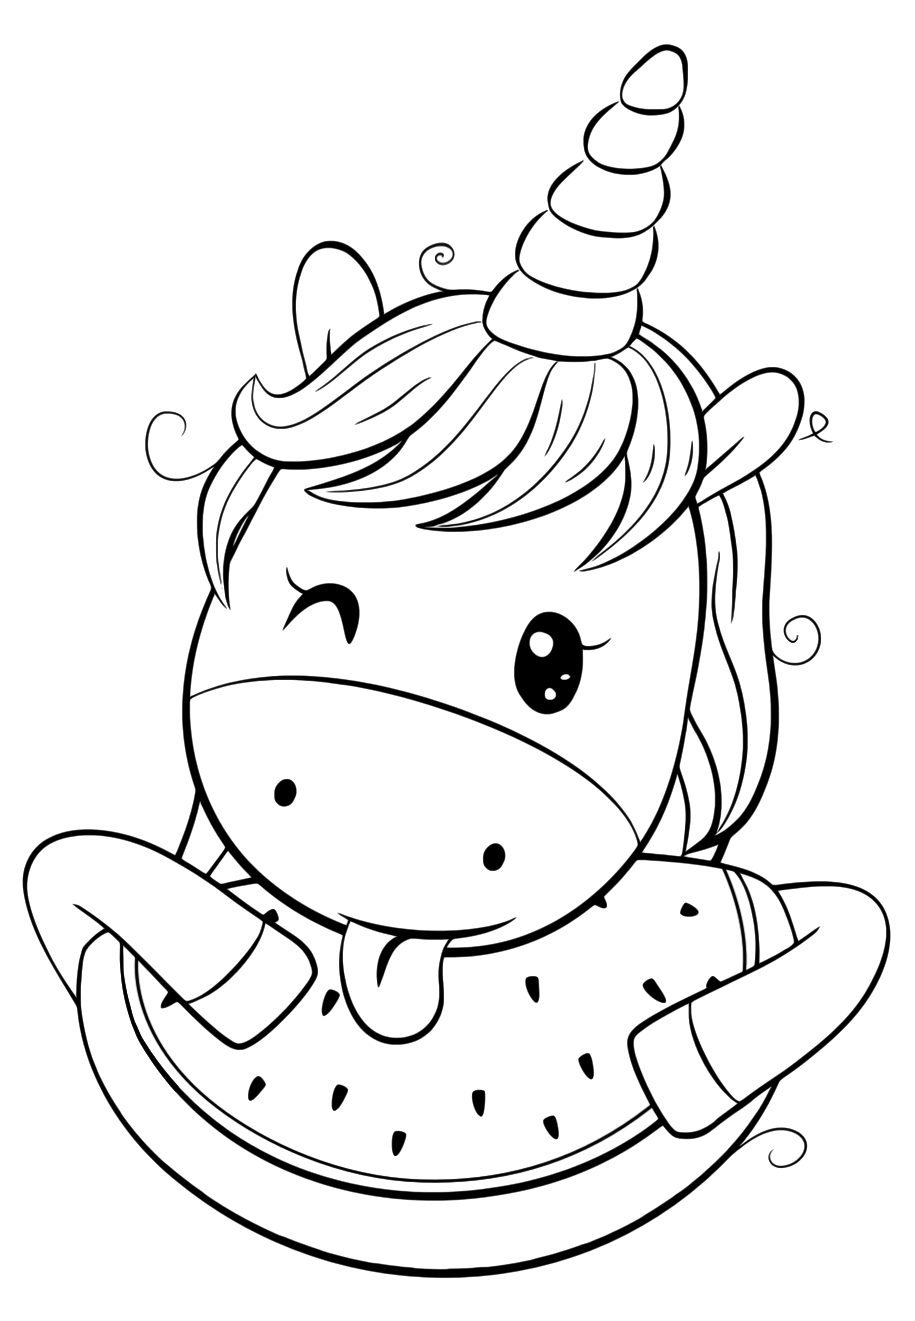 coloring for unicorn unicorns free colouring pages coloring unicorn for